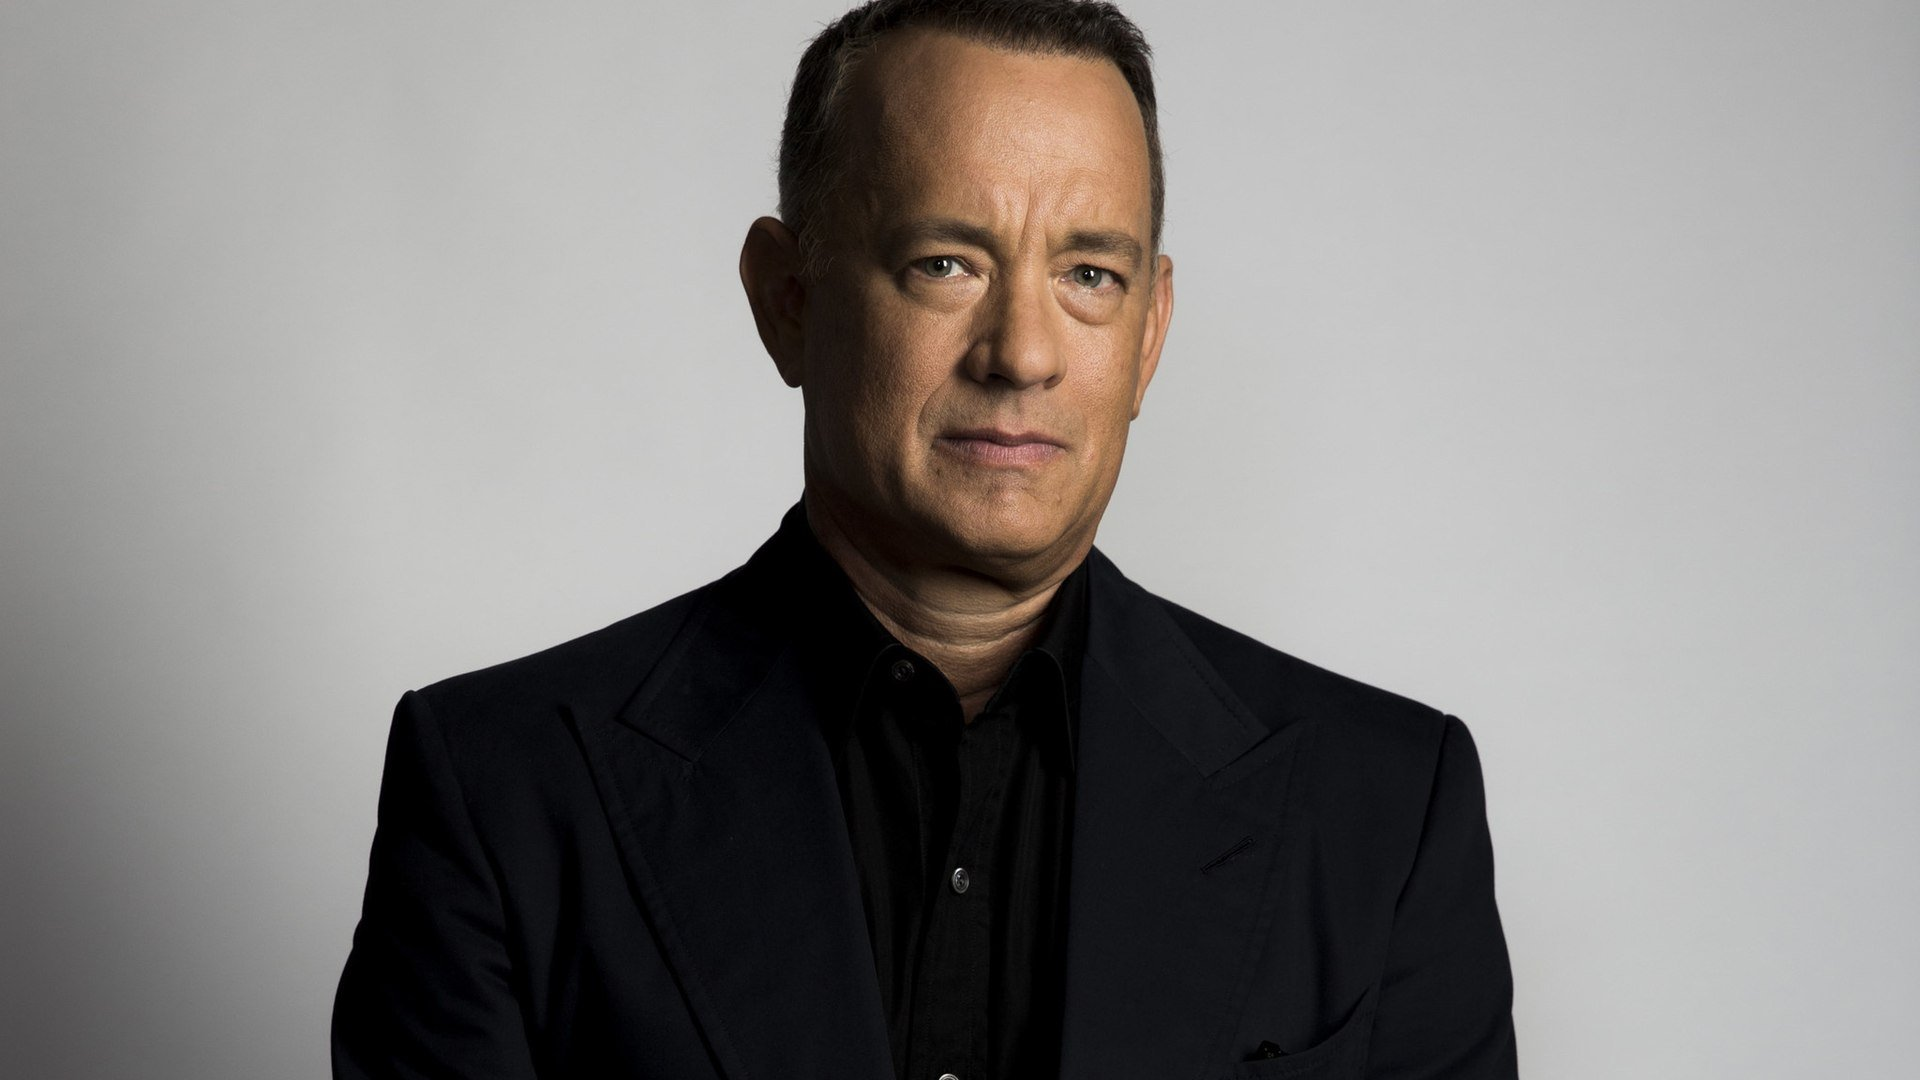 Melhores Filmes do Tom Hanks para ver no streaming